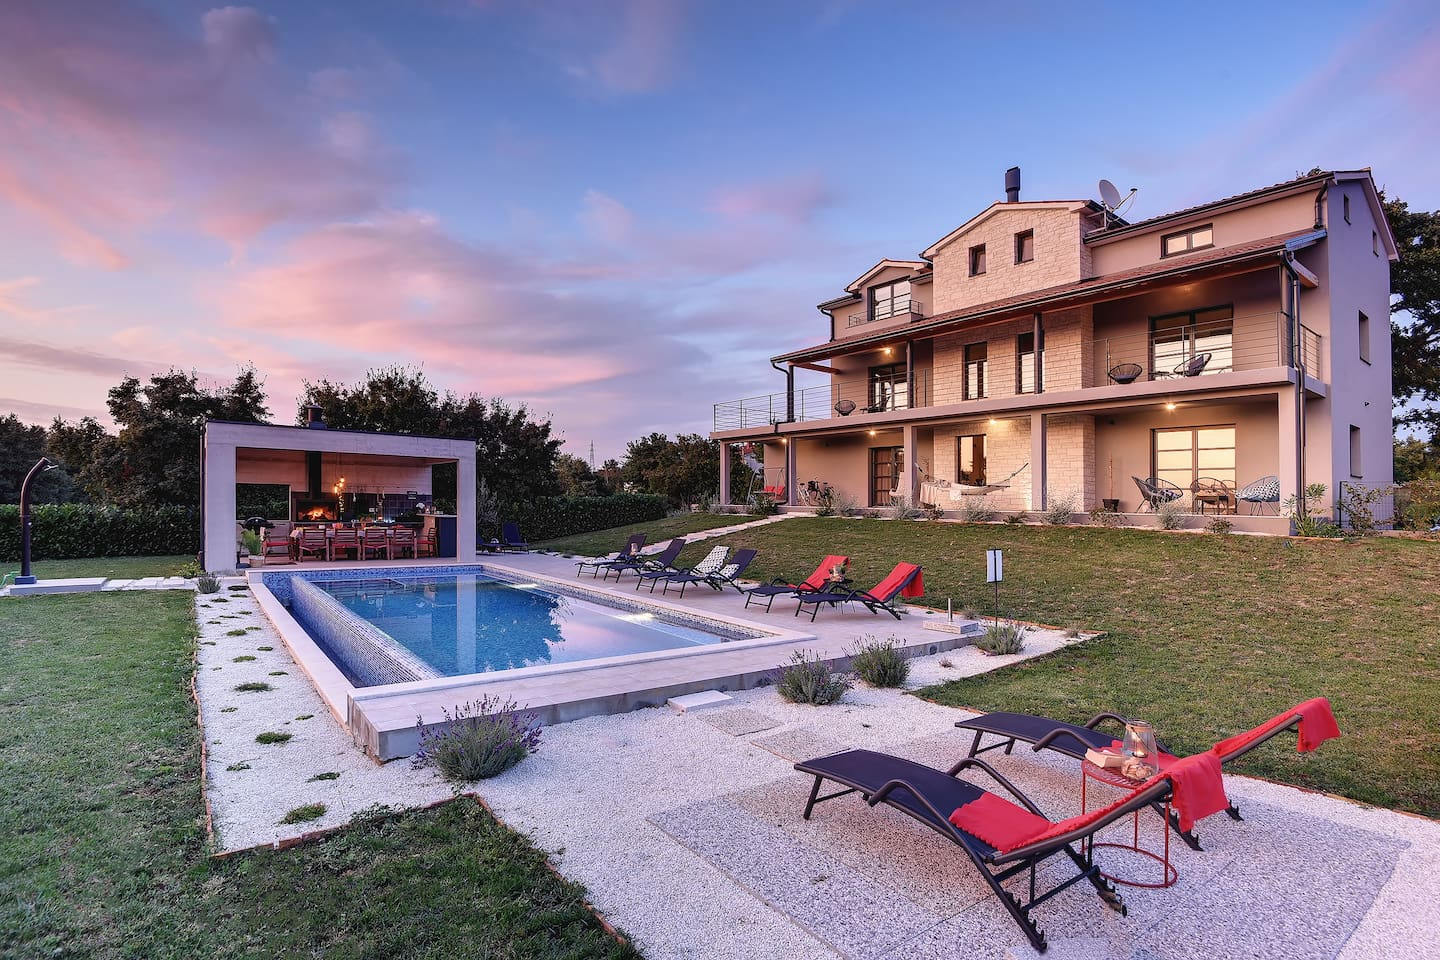 Villa2m Is located in central Istria, most Istrian towns are easily accessible.